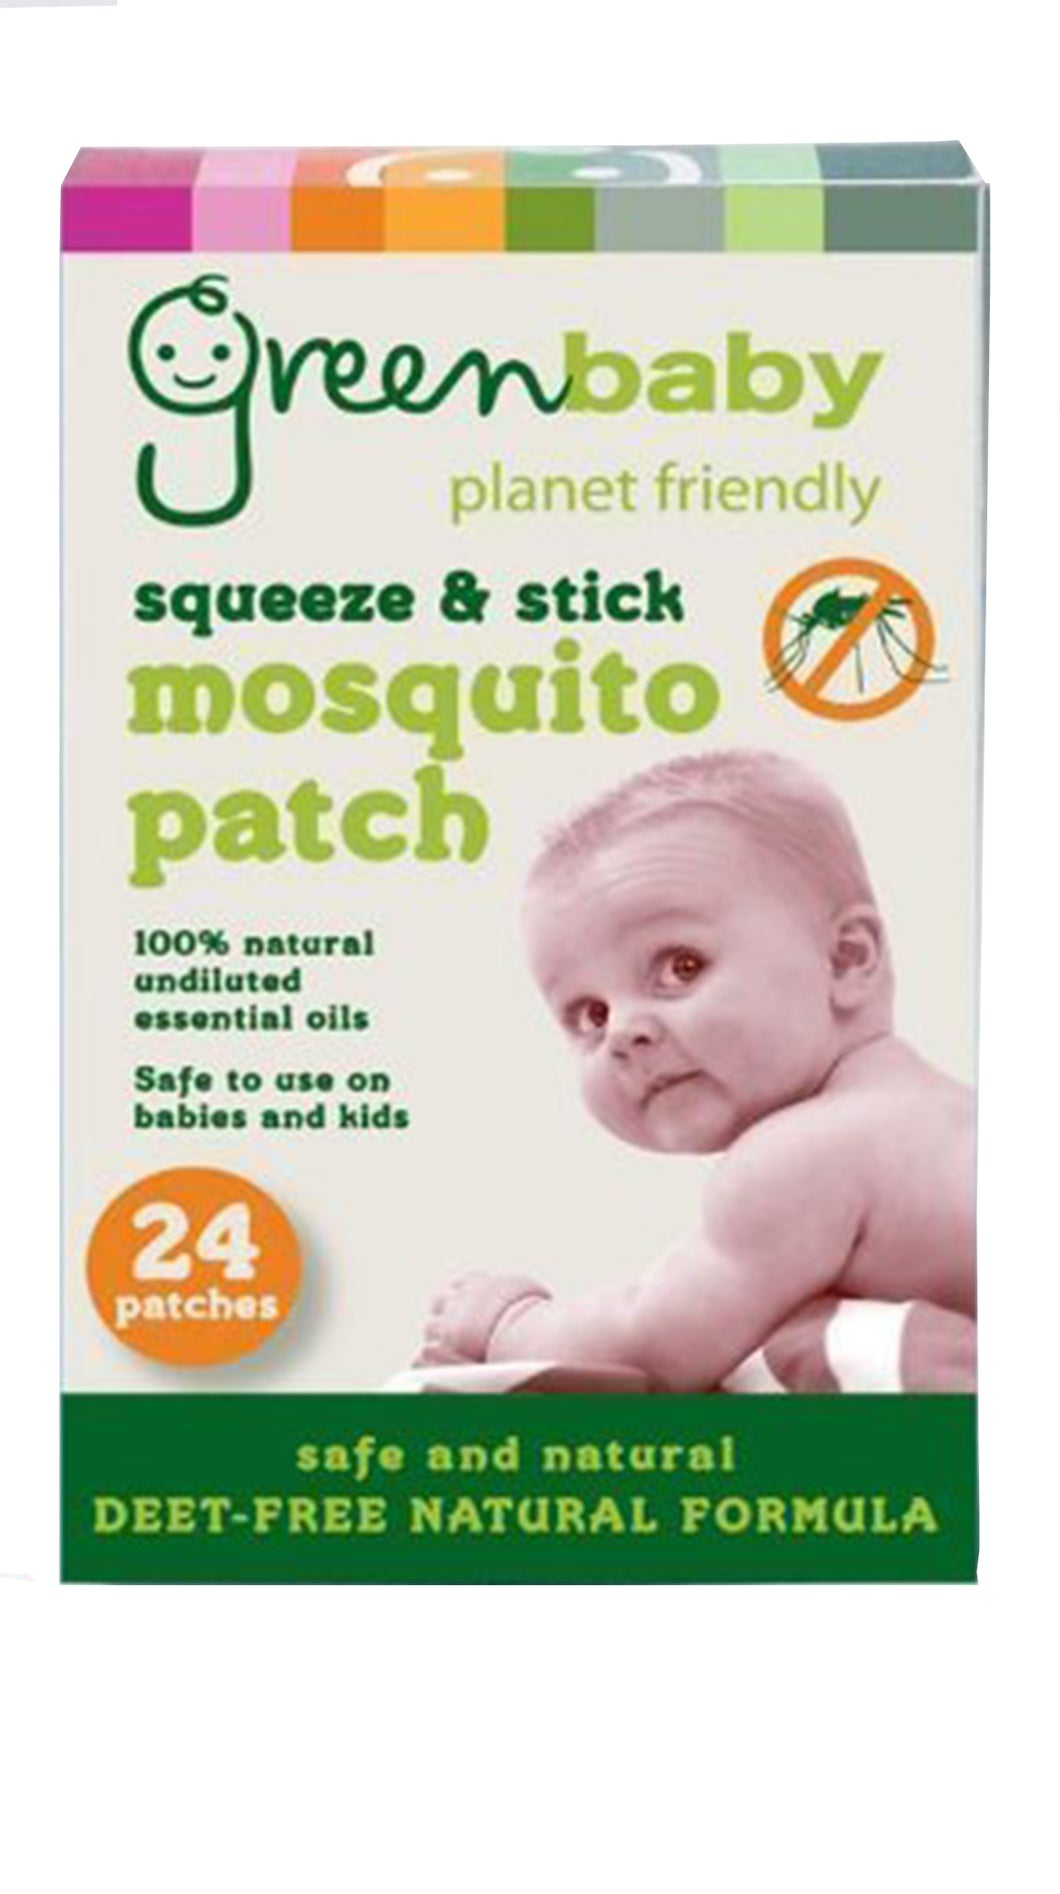 Green Baby Mosquito Patch Insect Repellent Deet Free 100% Natural